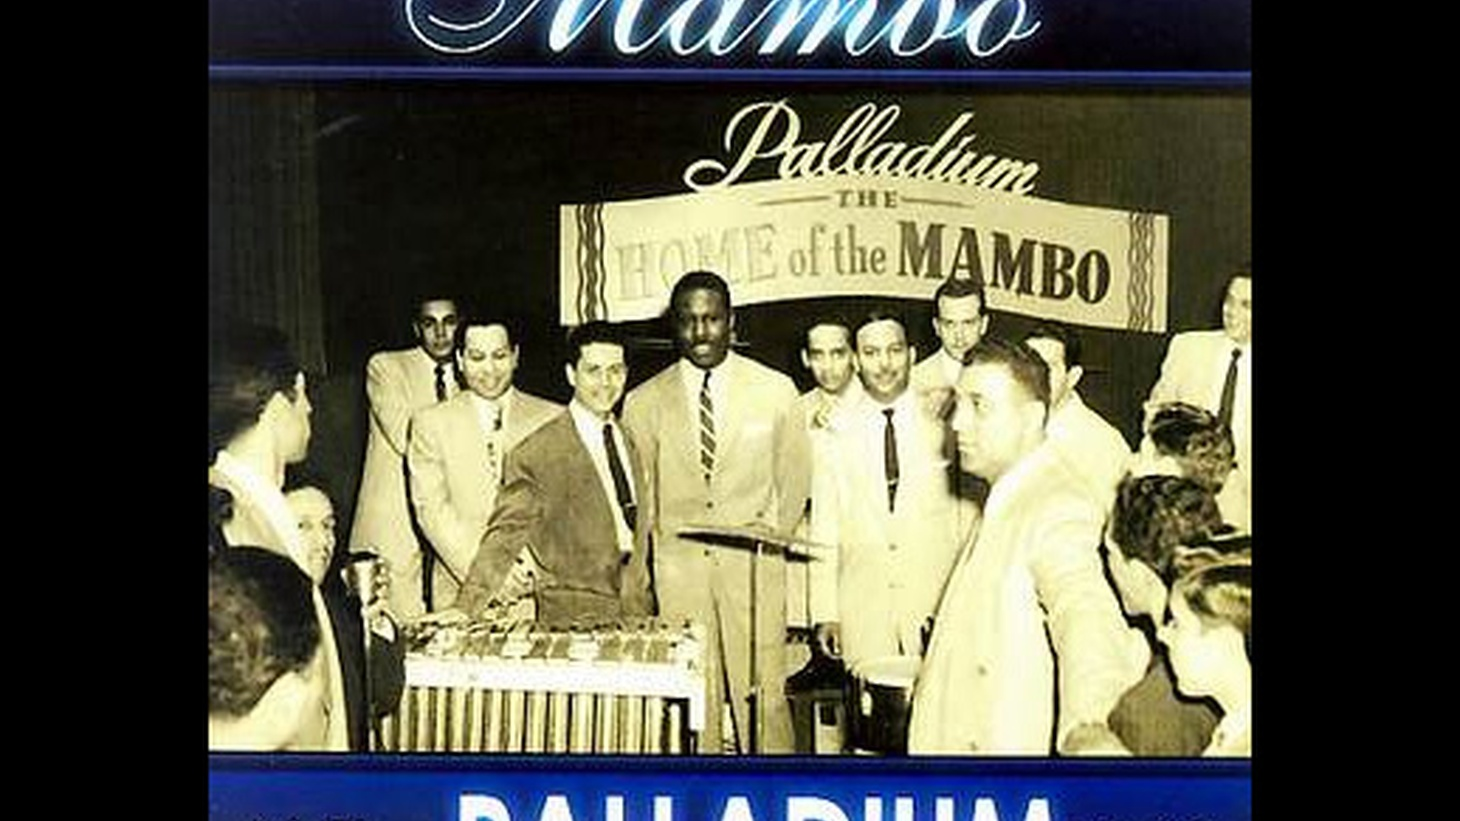 This show features memorable mambo nights from the Village Gate and Palladium nightclubs.